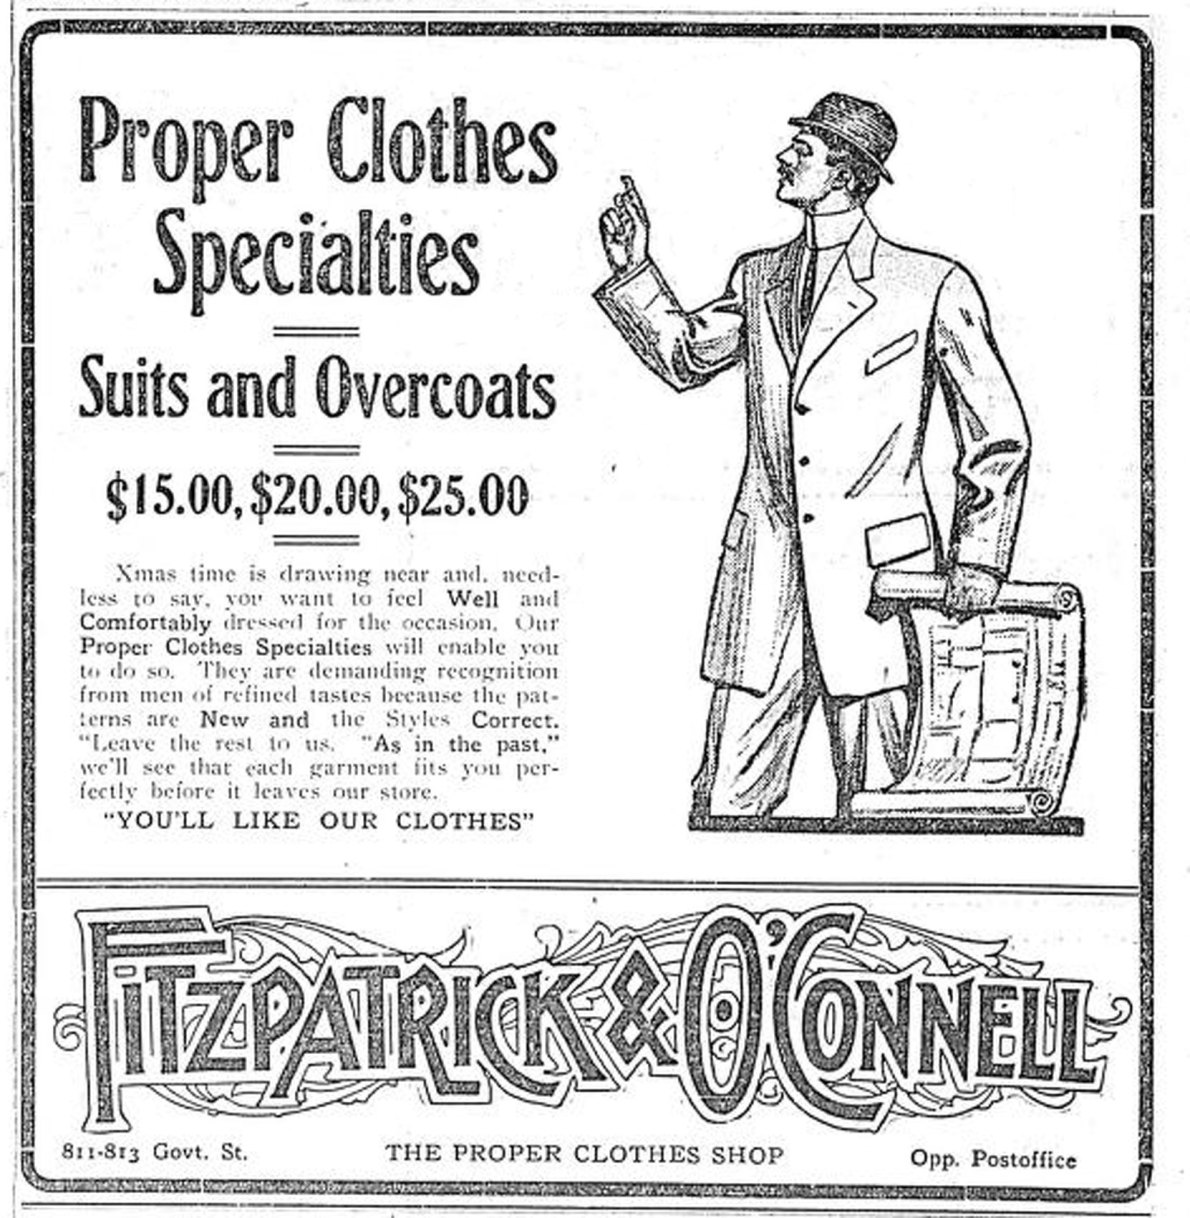 1909 advertisement for Fitzpatrick & O'Connell, The Proper Clothes Shop, 811-813 Government Street. The building in which this business was located is still standing. (Victoria Online Sightseeing Tours collection)